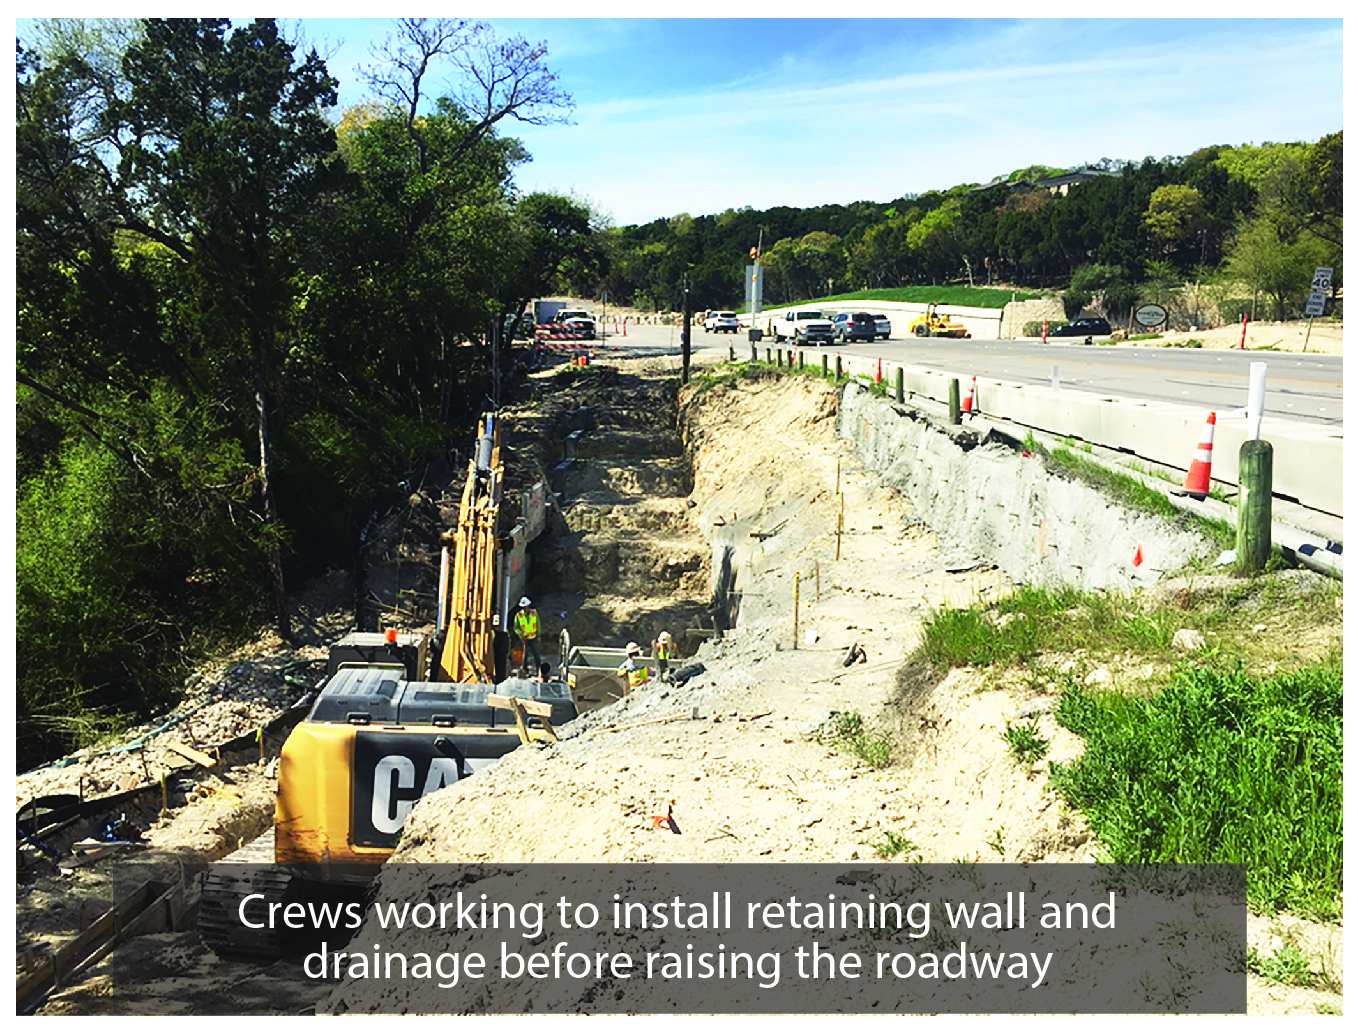 Crews working to install the retaining wall and drainage by road